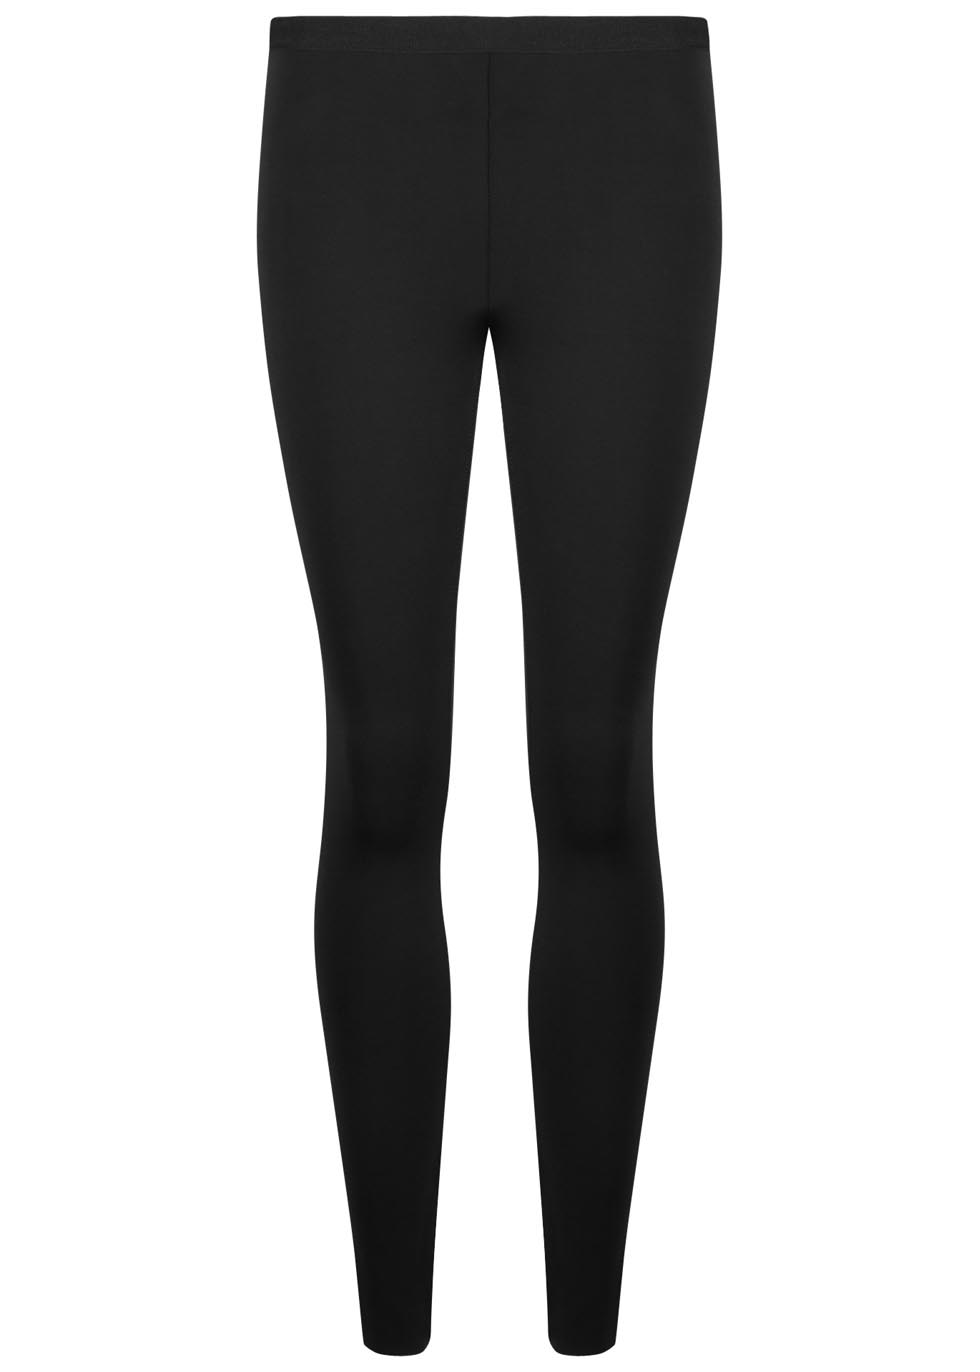 Black neoprene leggings